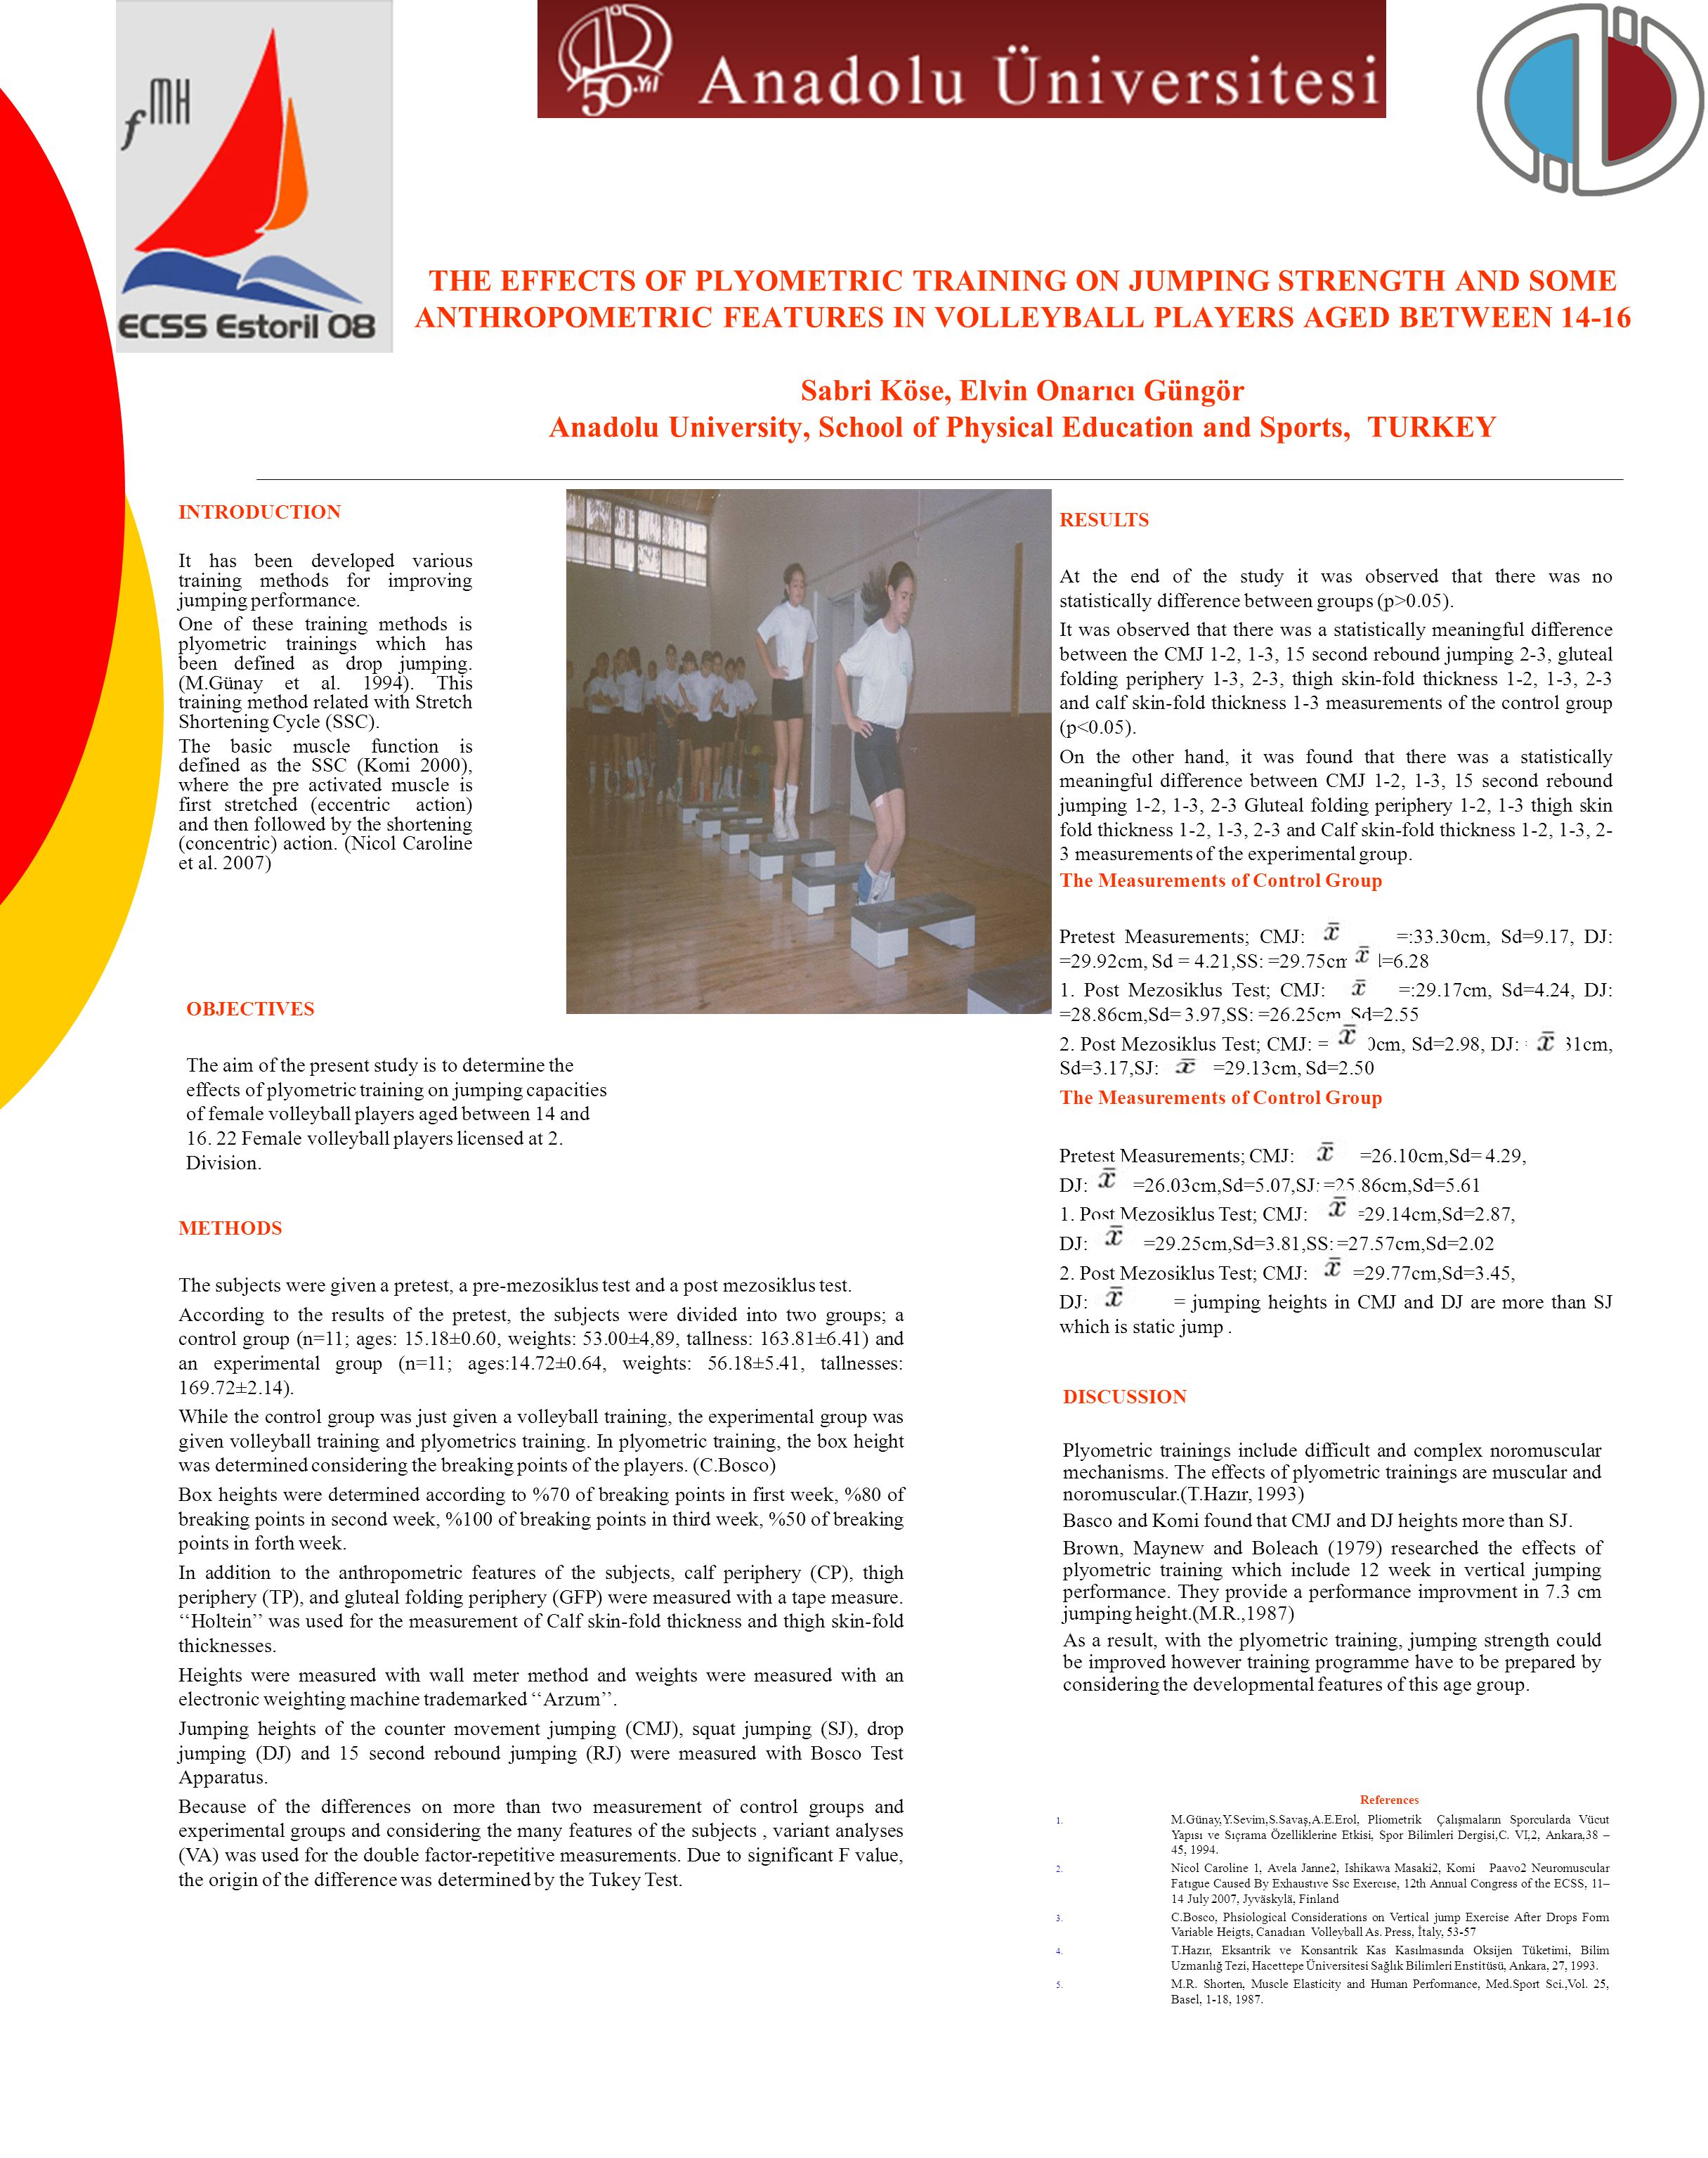 THE EFFECTS OF PLYOMETRIC TRAINING ON JUMPING STRENGTH AND SOME ANTHROPOMETRIC FEATURES IN VOLLEYBALL PLAYERS AGED BETWEEN 14-16 Sabri Köse, Elvin Onarıcı Güngör Anadolu University, School of Physical Education and Sports, TURKEY INTRODUCTION It has been developed various training methods for improving jumping performance.